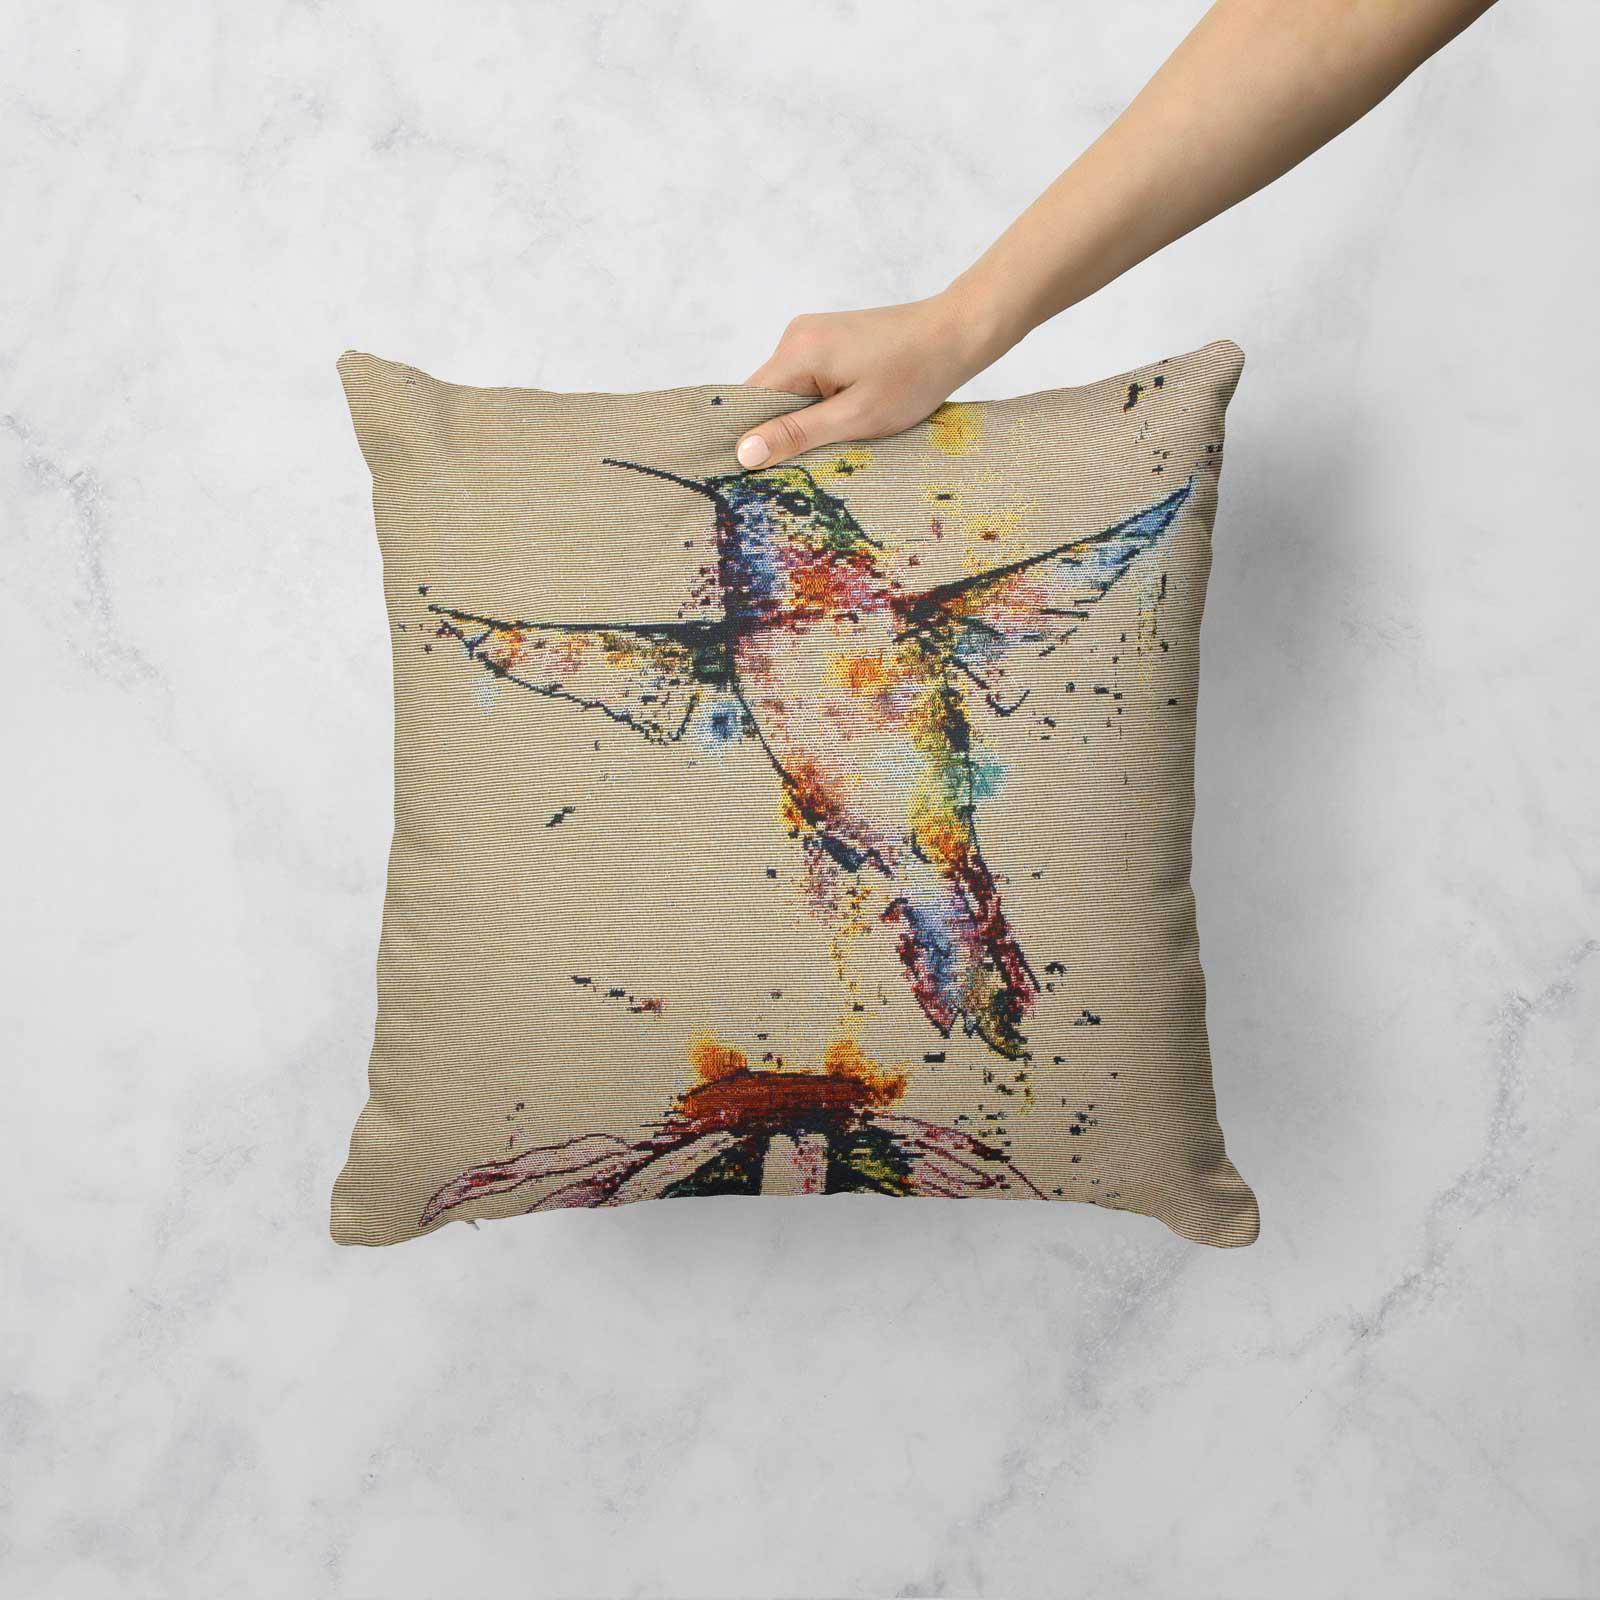 Tapestry-Cushion-Covers-Vintage-Pillow-Cover-Collection-18-034-45cm-Filled-Cushions thumbnail 85